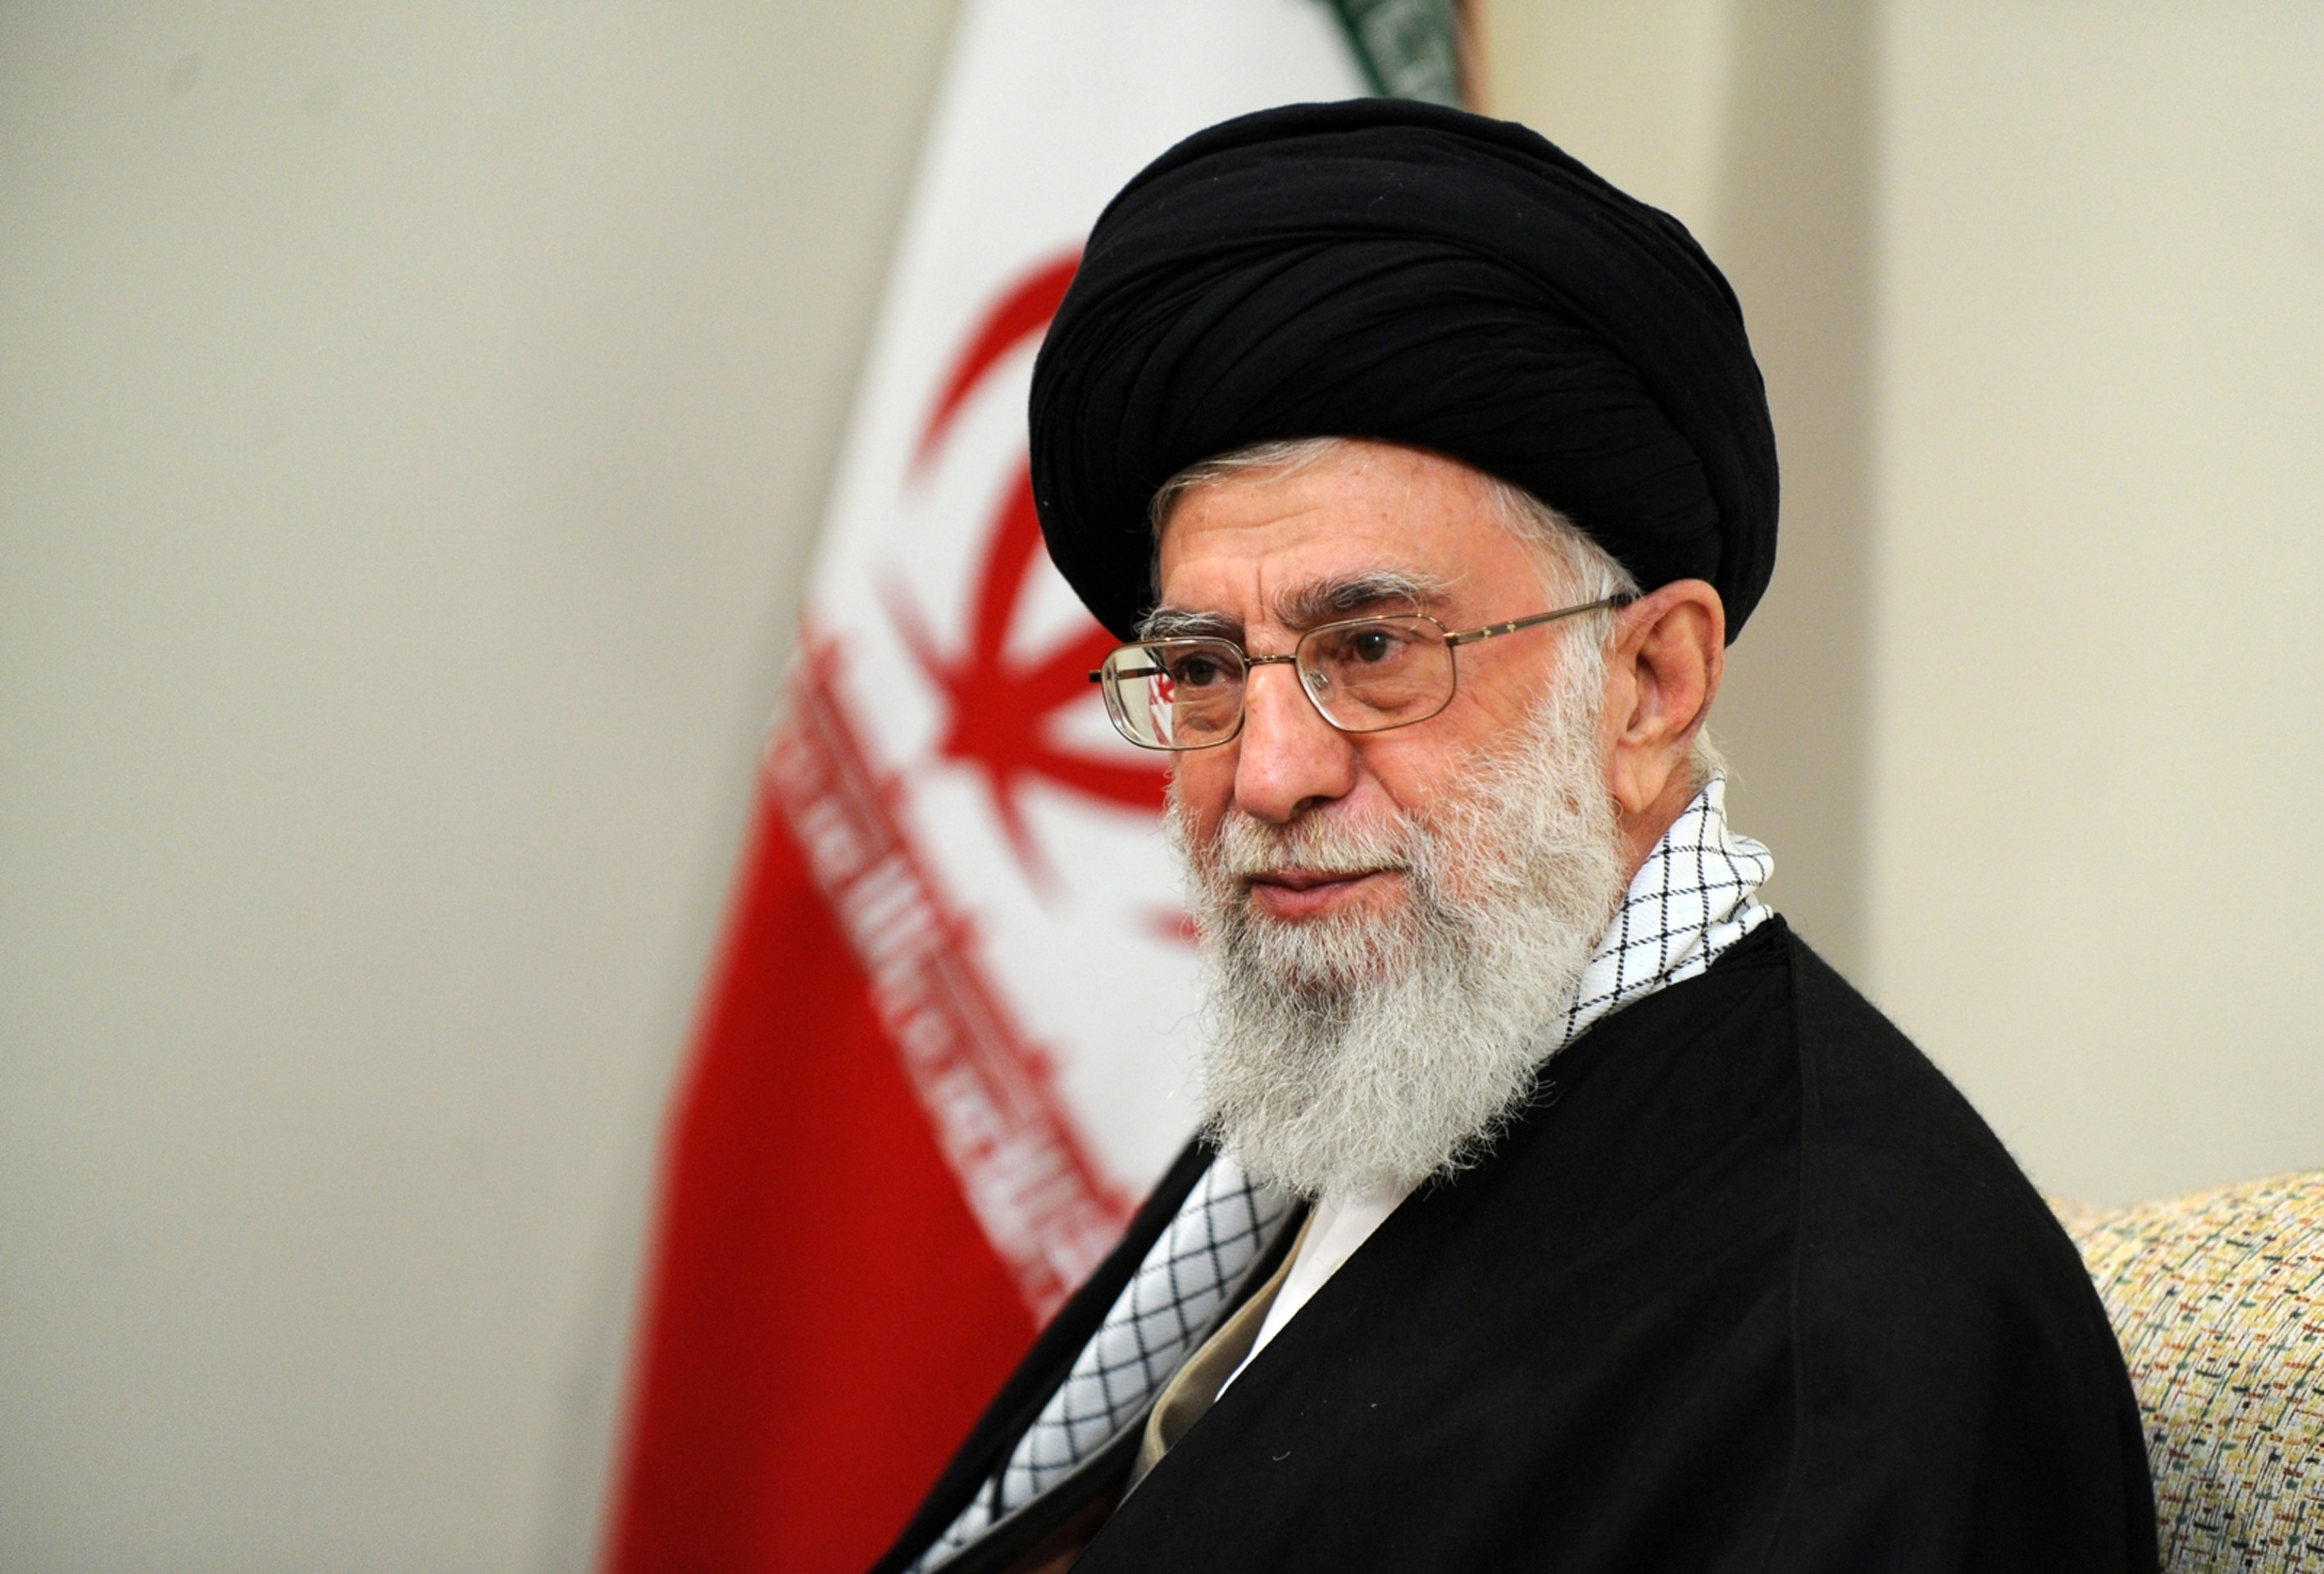 Ali Khamenei pictured during a meeting with Afghanistan's President Ashraf Ghani in April 2015.